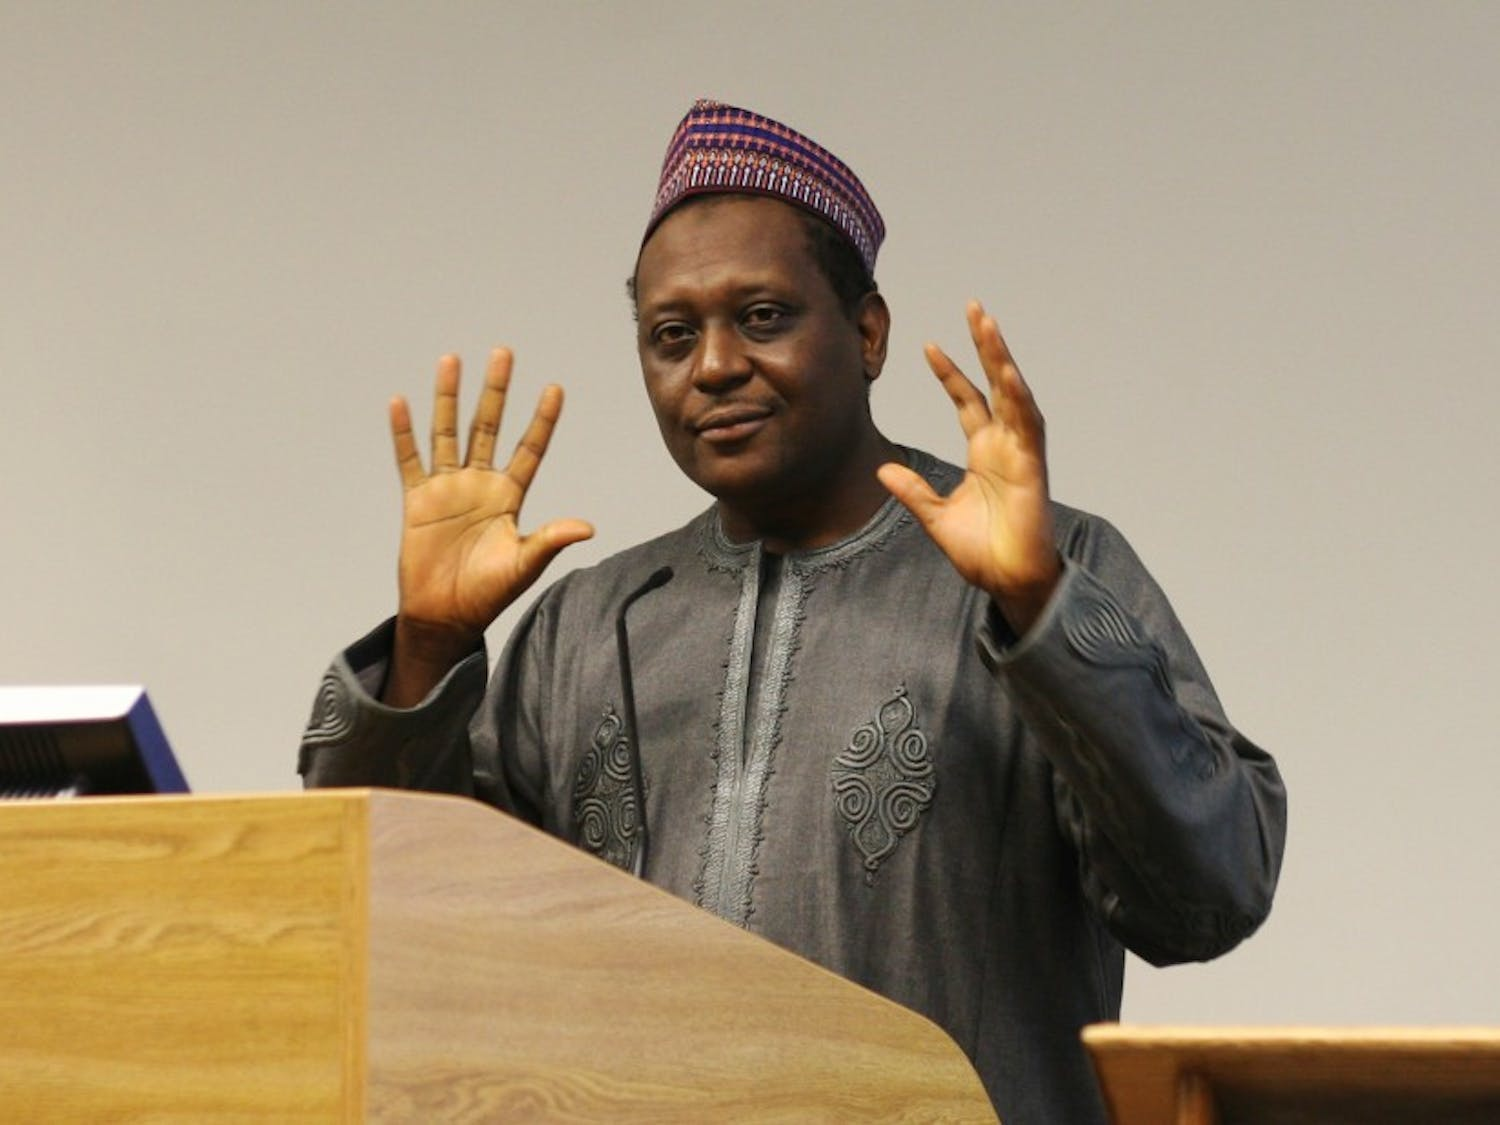 The former Nigerian Minister of State for Heath will teach and mentor at the Duke Global Health Institute.